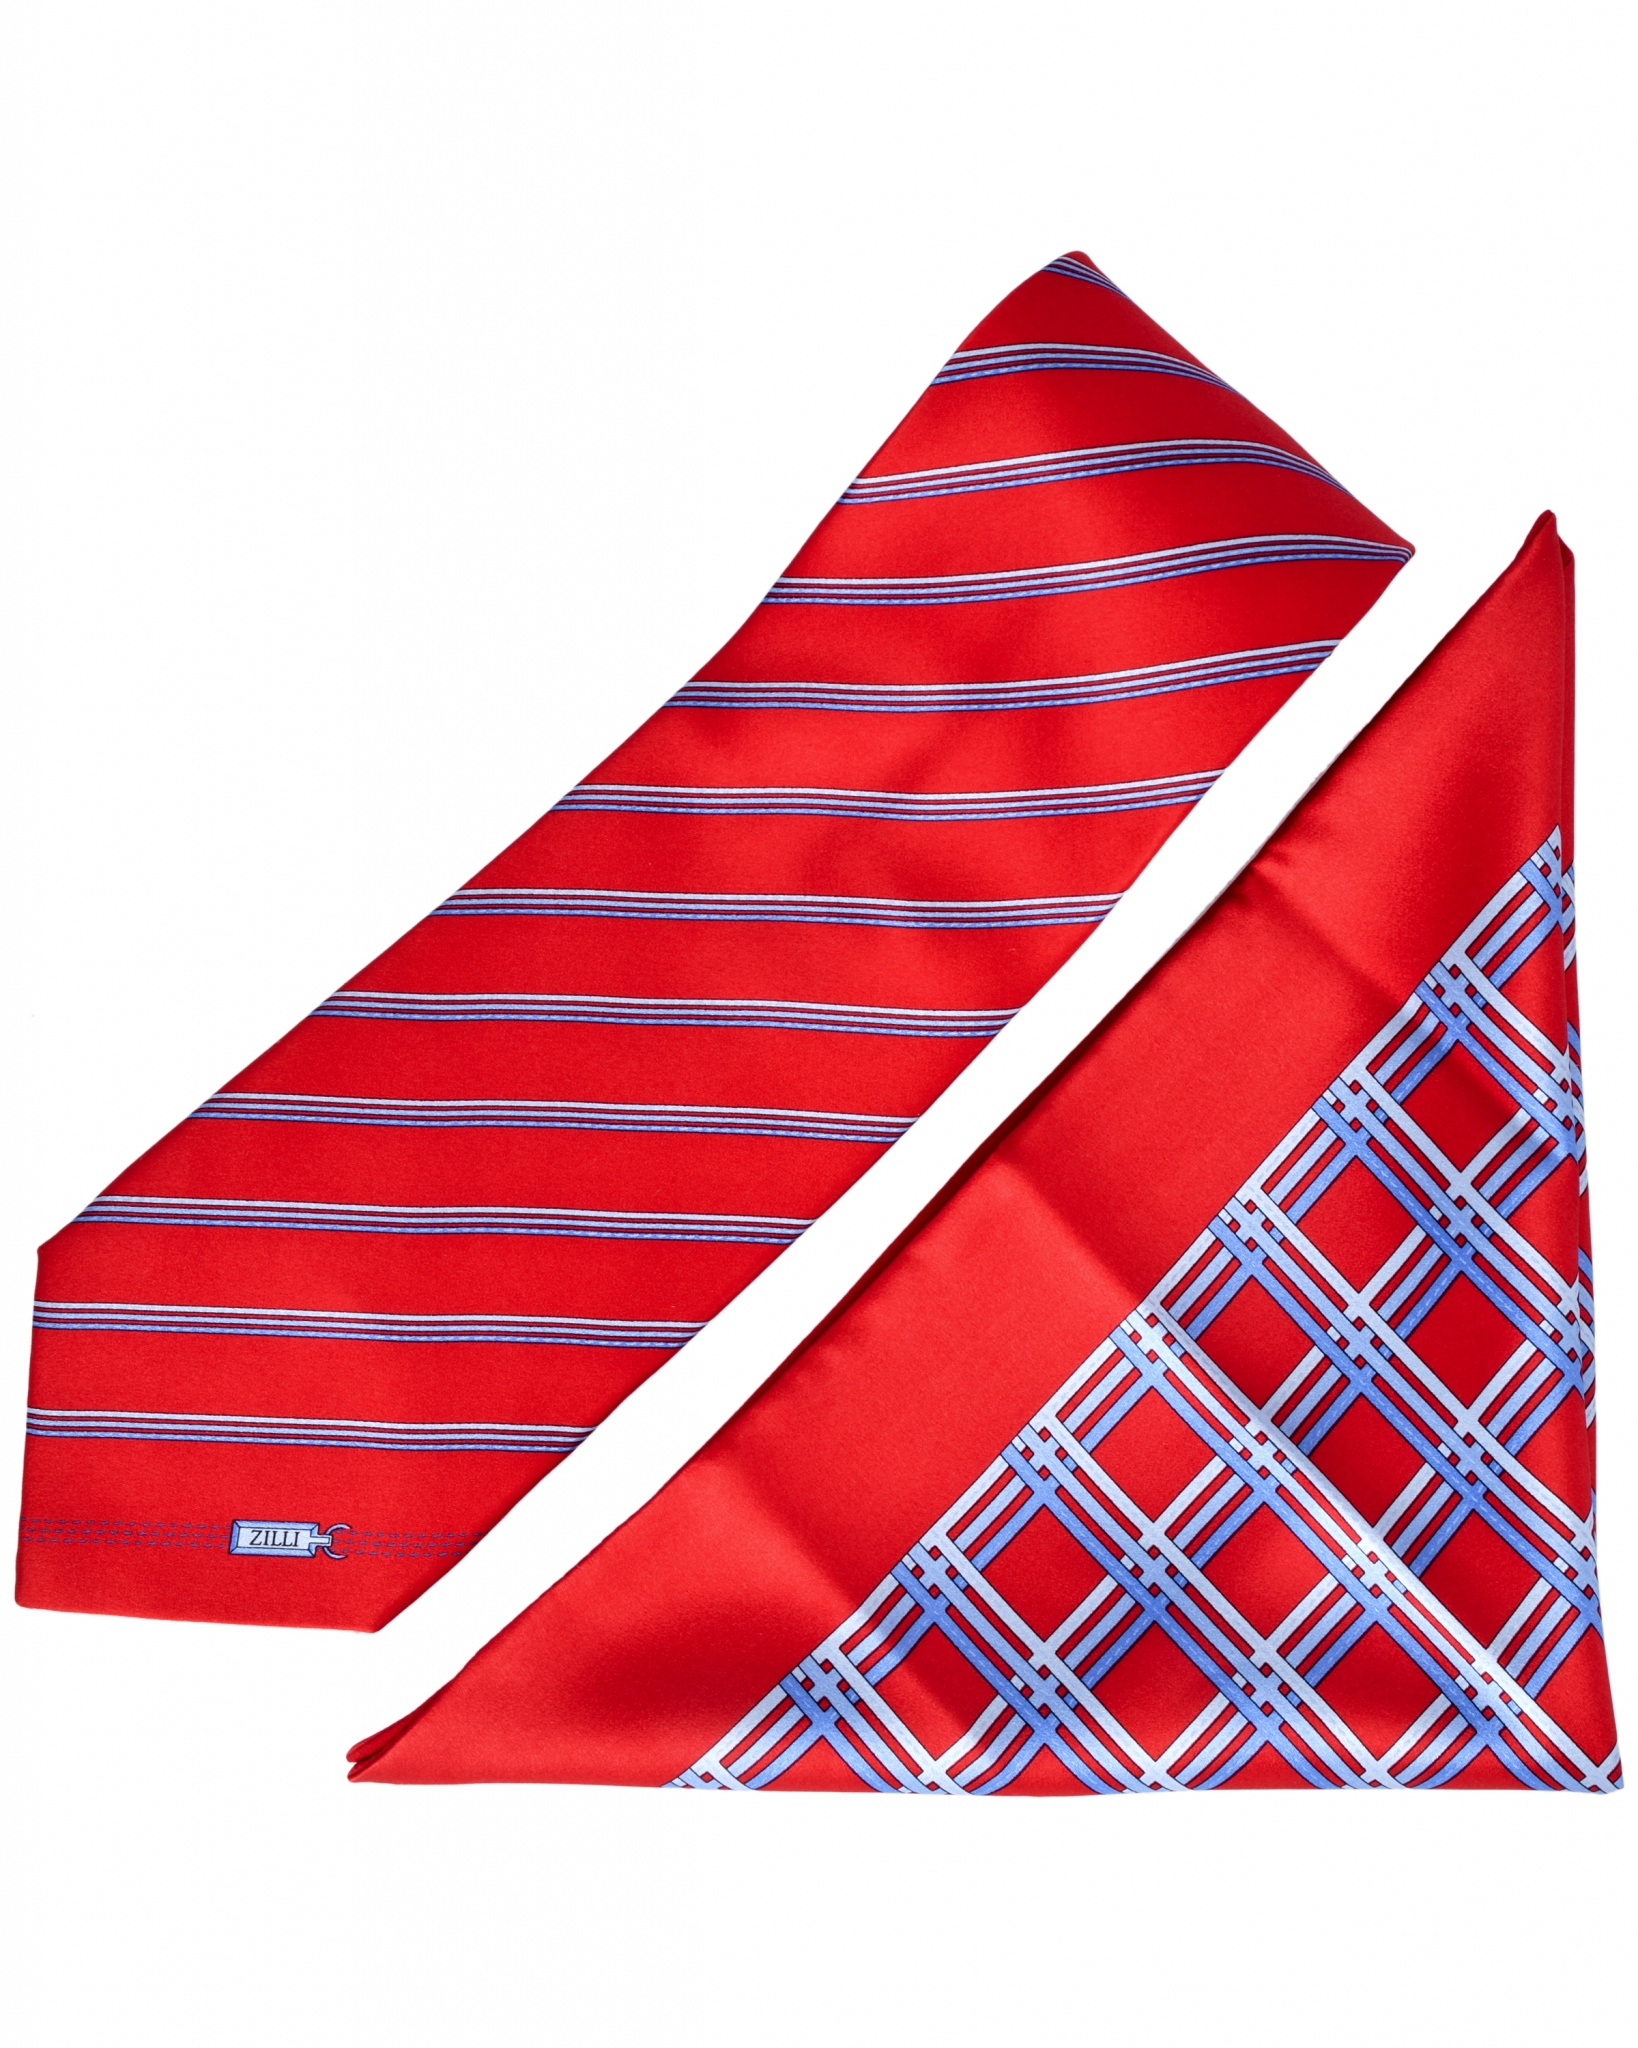 ZILLI – 100% Silk Tie & Pocket Square Set Red 5242V10